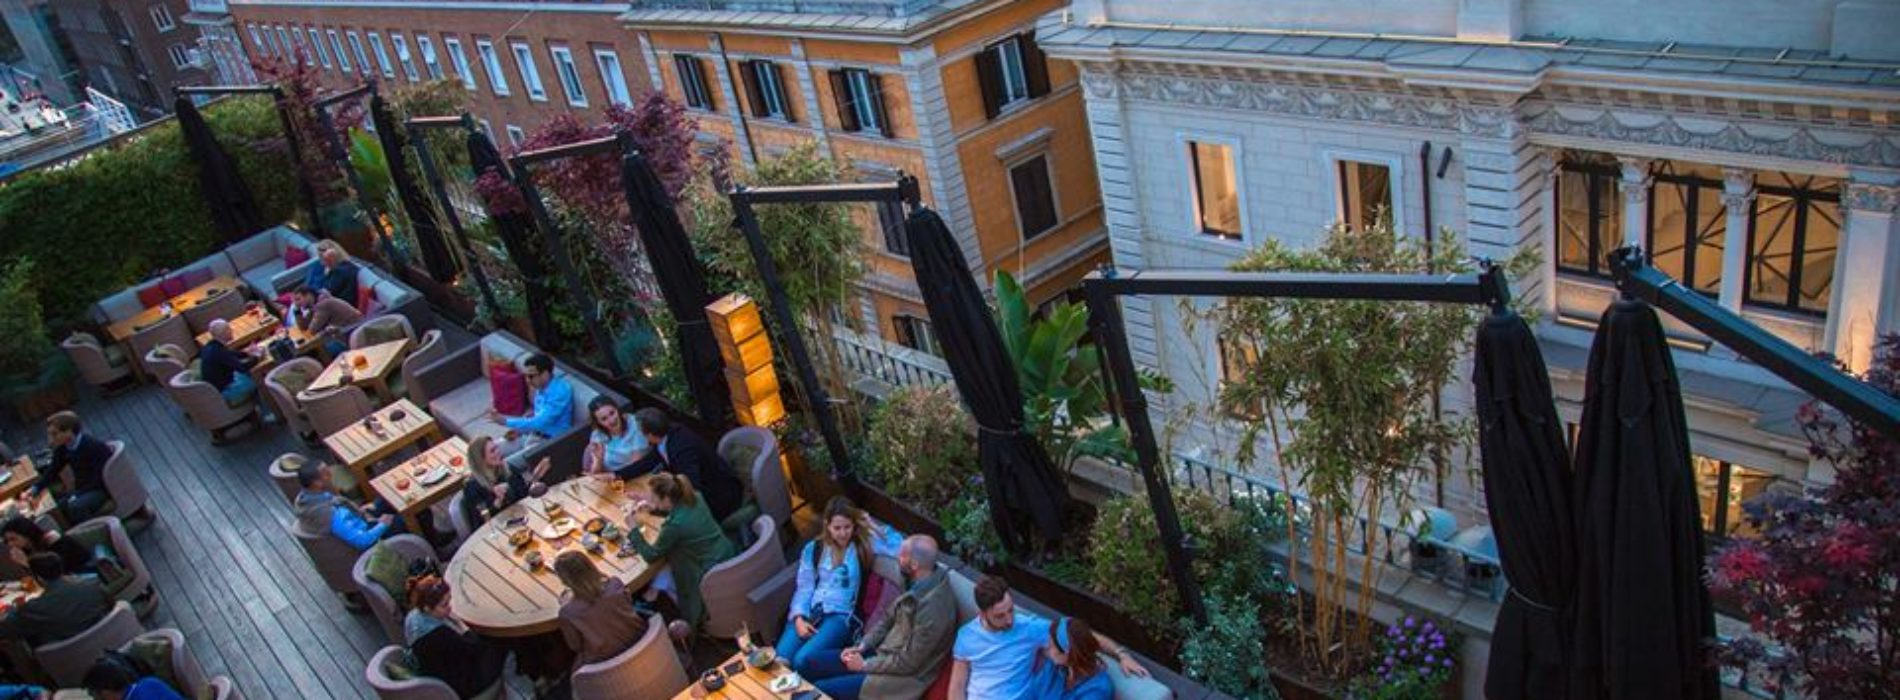 Where to eat fresh fish seated outside in Rome, the best restaurants